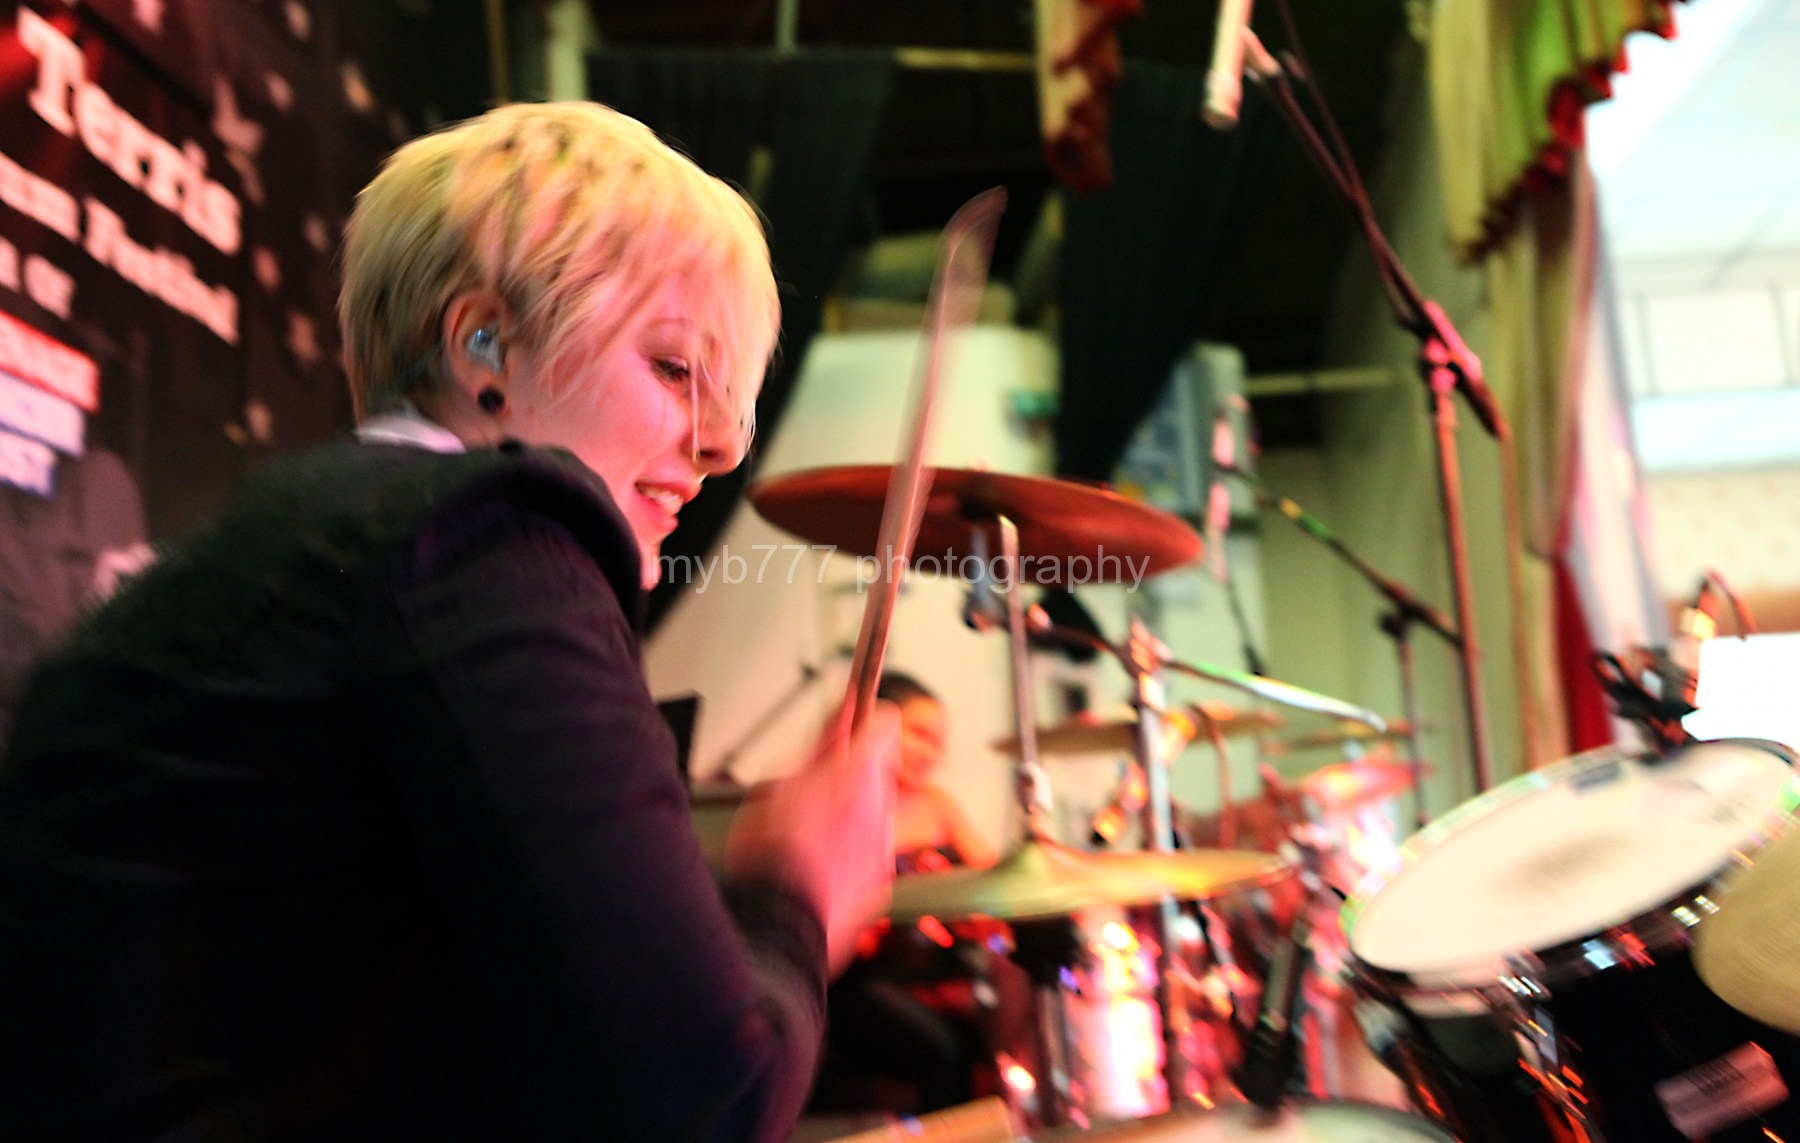 Drummer-Photography-by-myb777-45